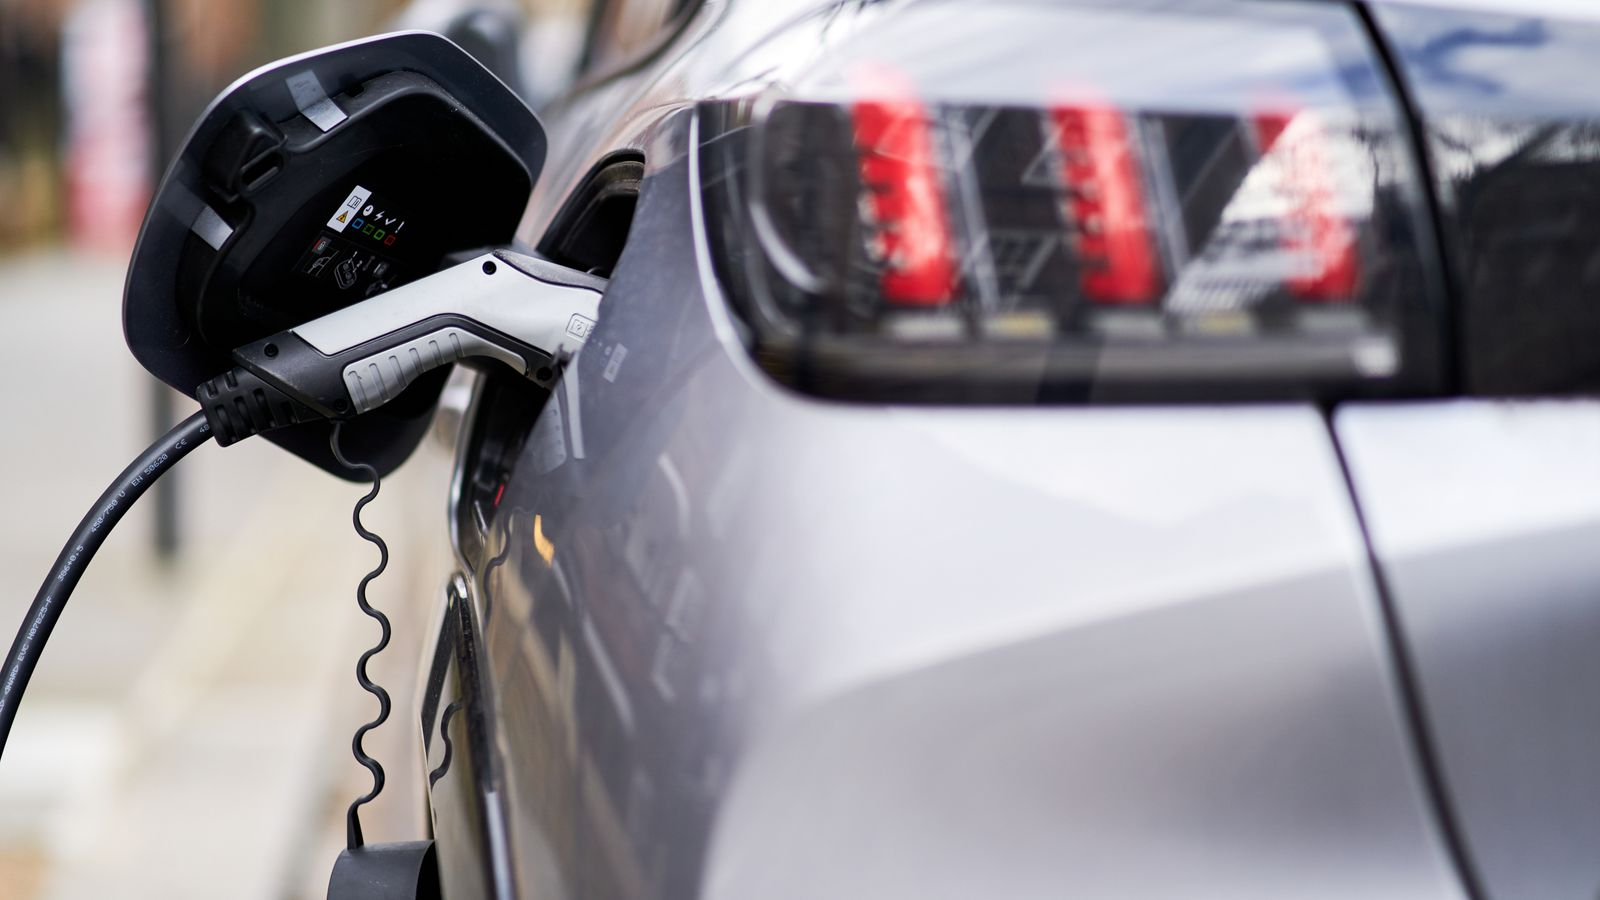 Net zero strategy: Government plans will 'support up to 440,000 jobs', minister says – as plans to end sale of new petrol and diesel cars revealed